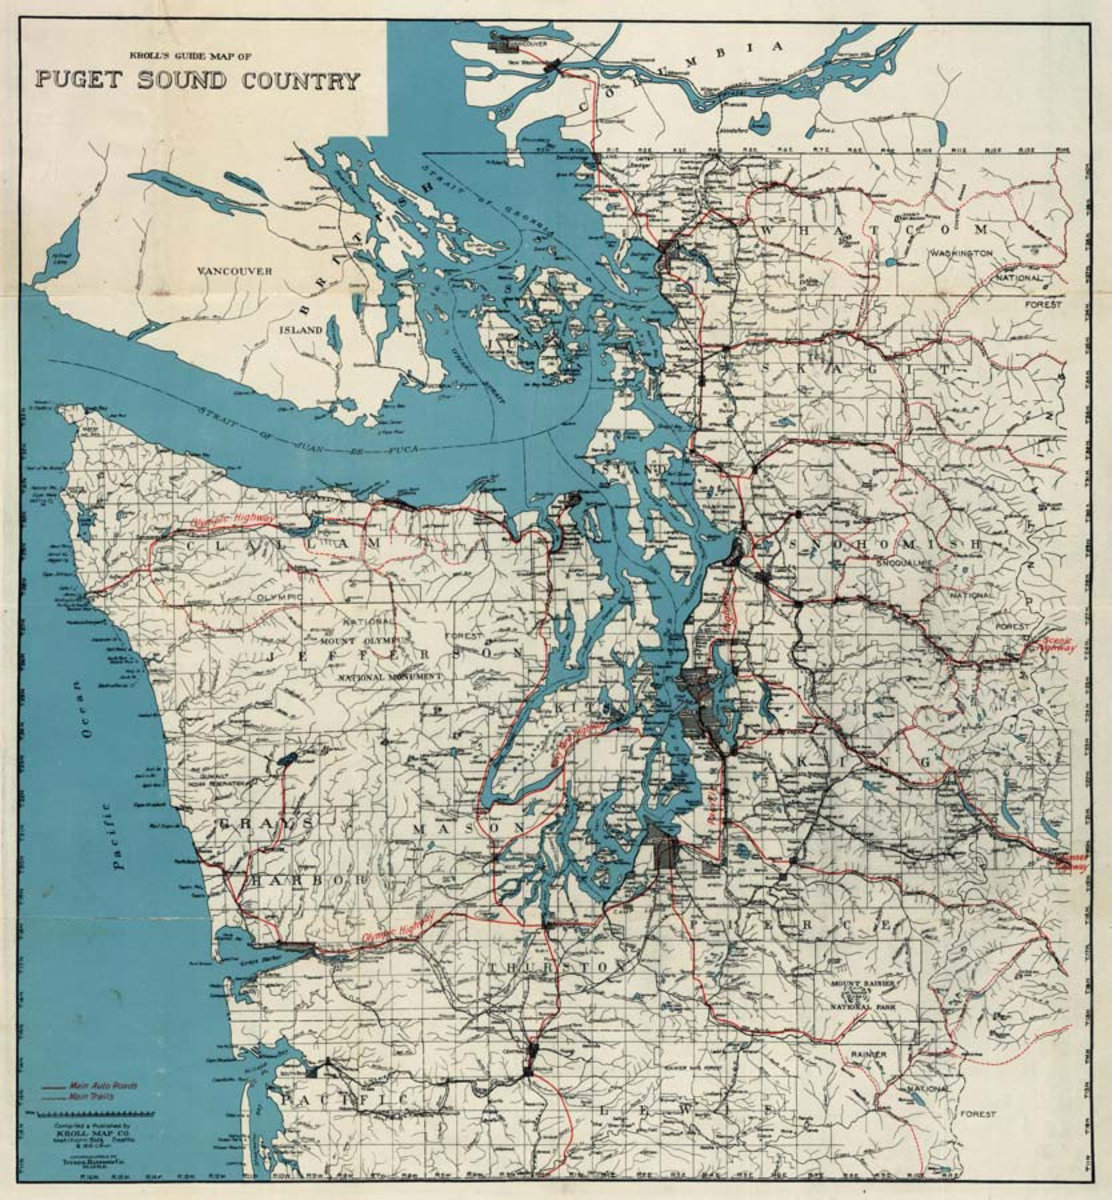 Puget Sound County 1919 Map Sample